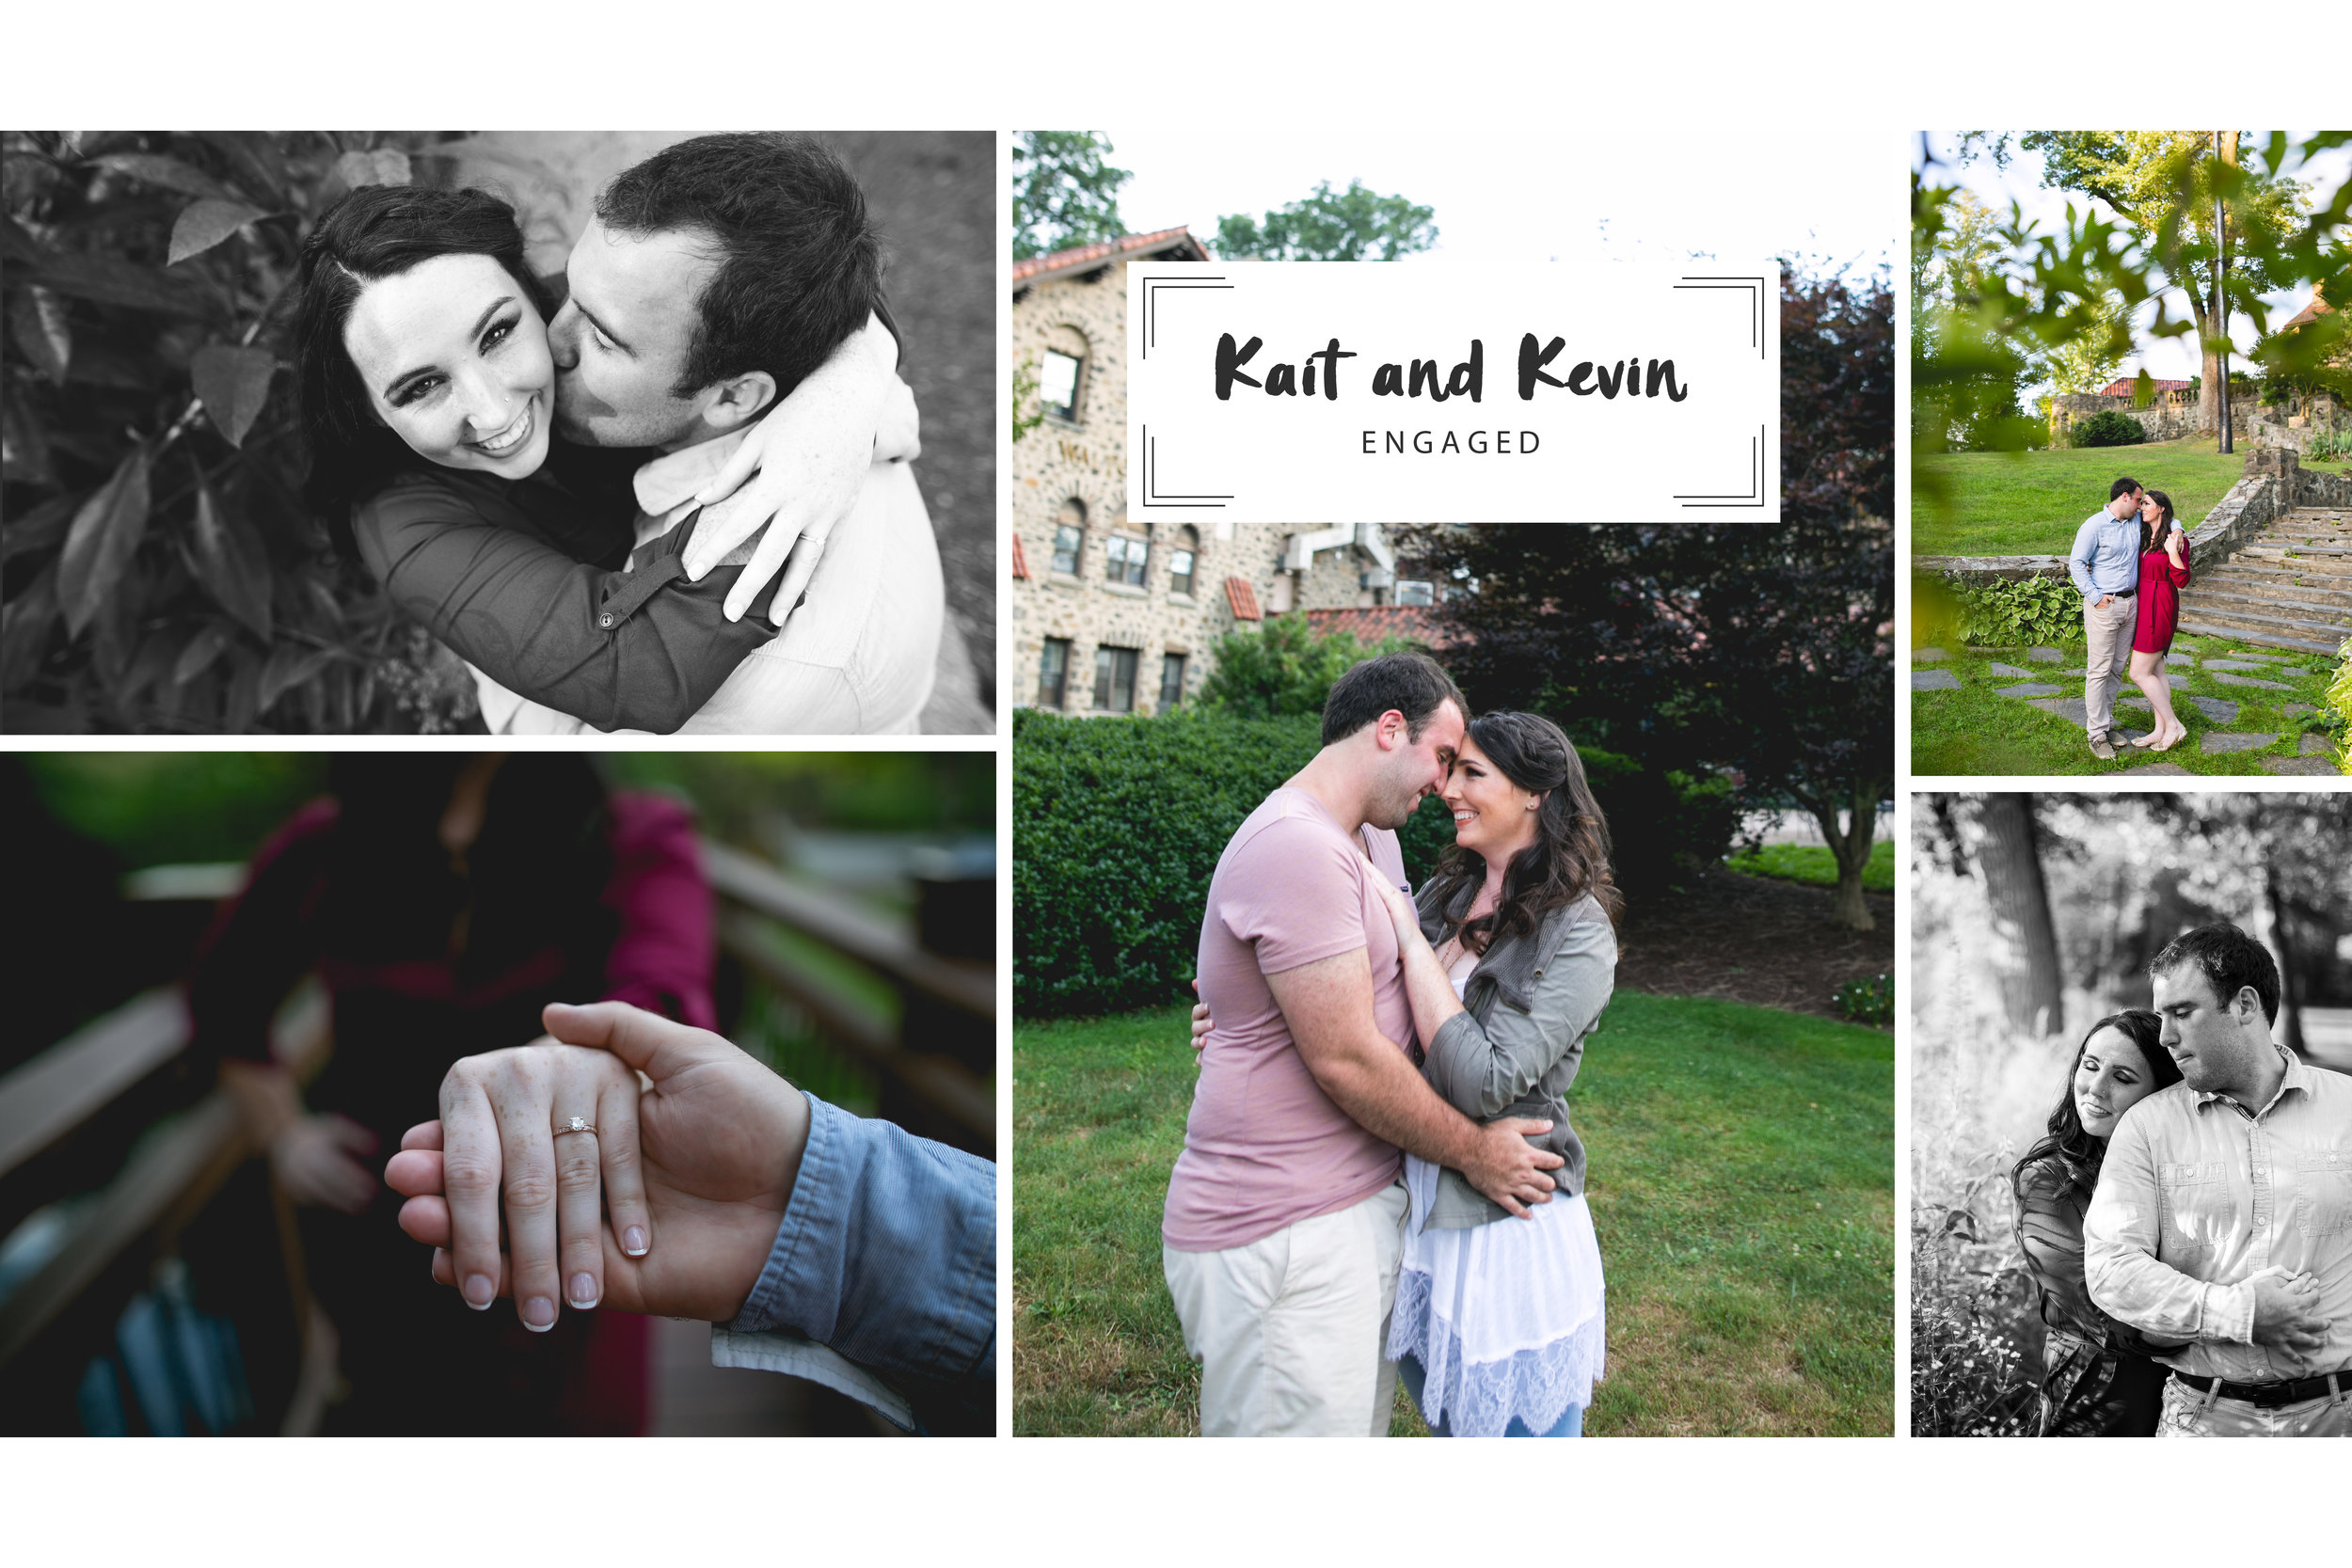 An Eastern University Engagement Session by Swiger Photography, a Philadelphia Wedding Photography company!